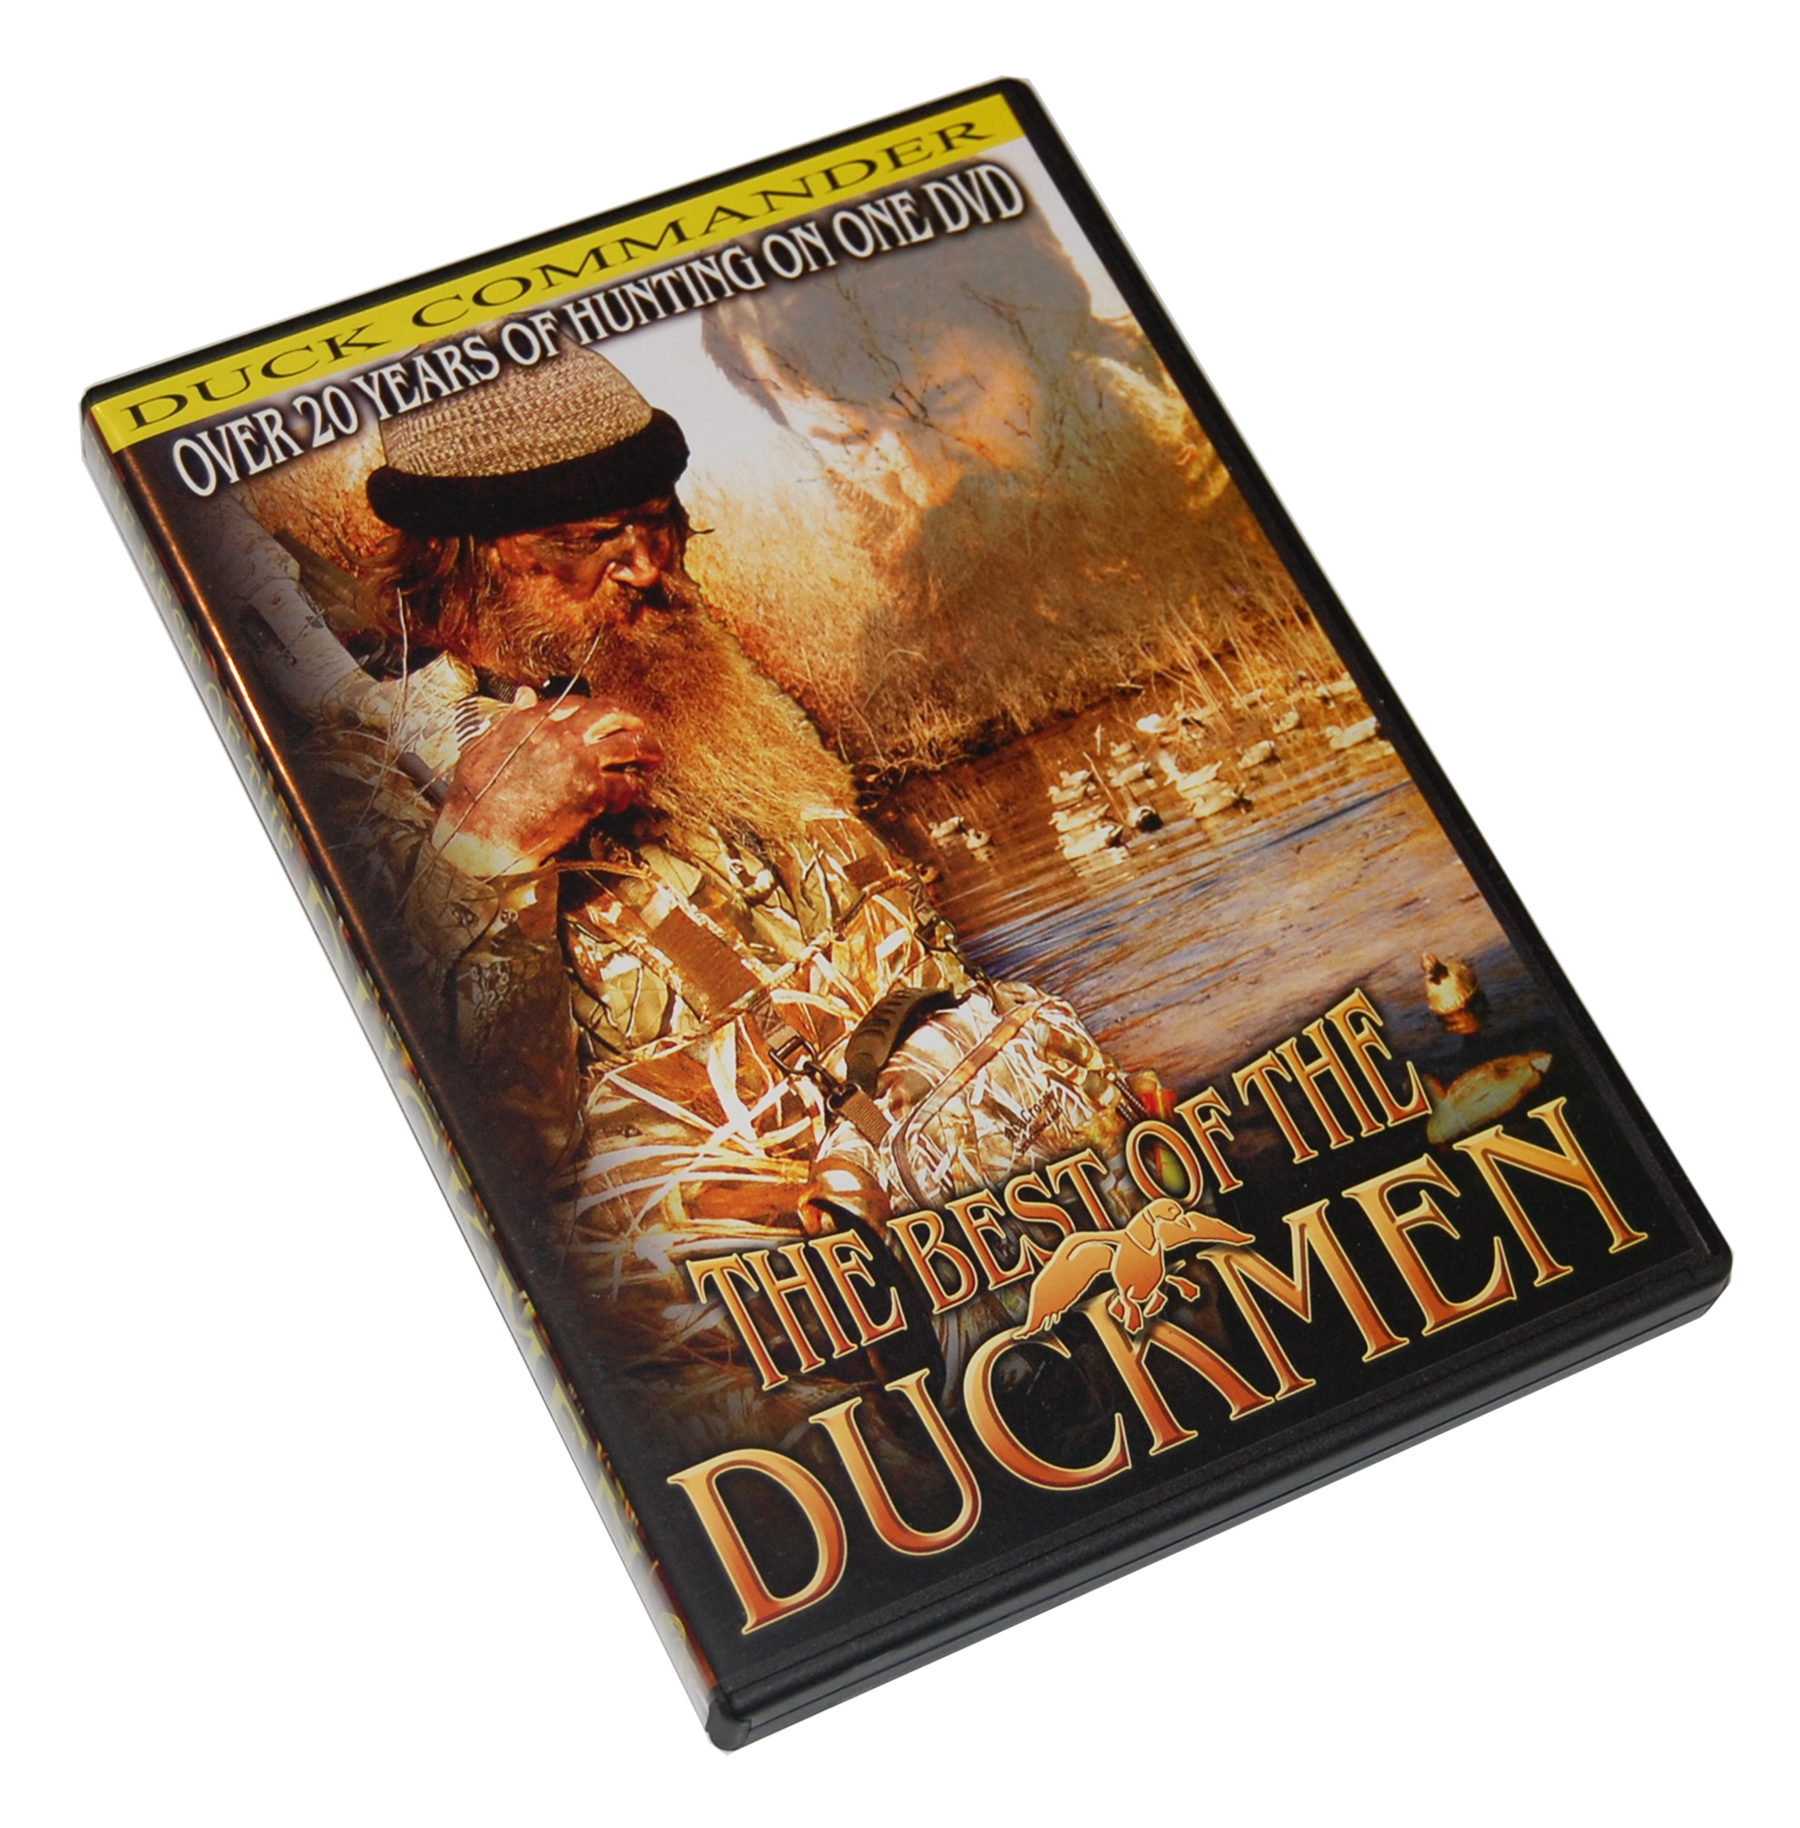 Duck Commander DDB0 Best of the Duckmen DVD 66 Minutes 1992